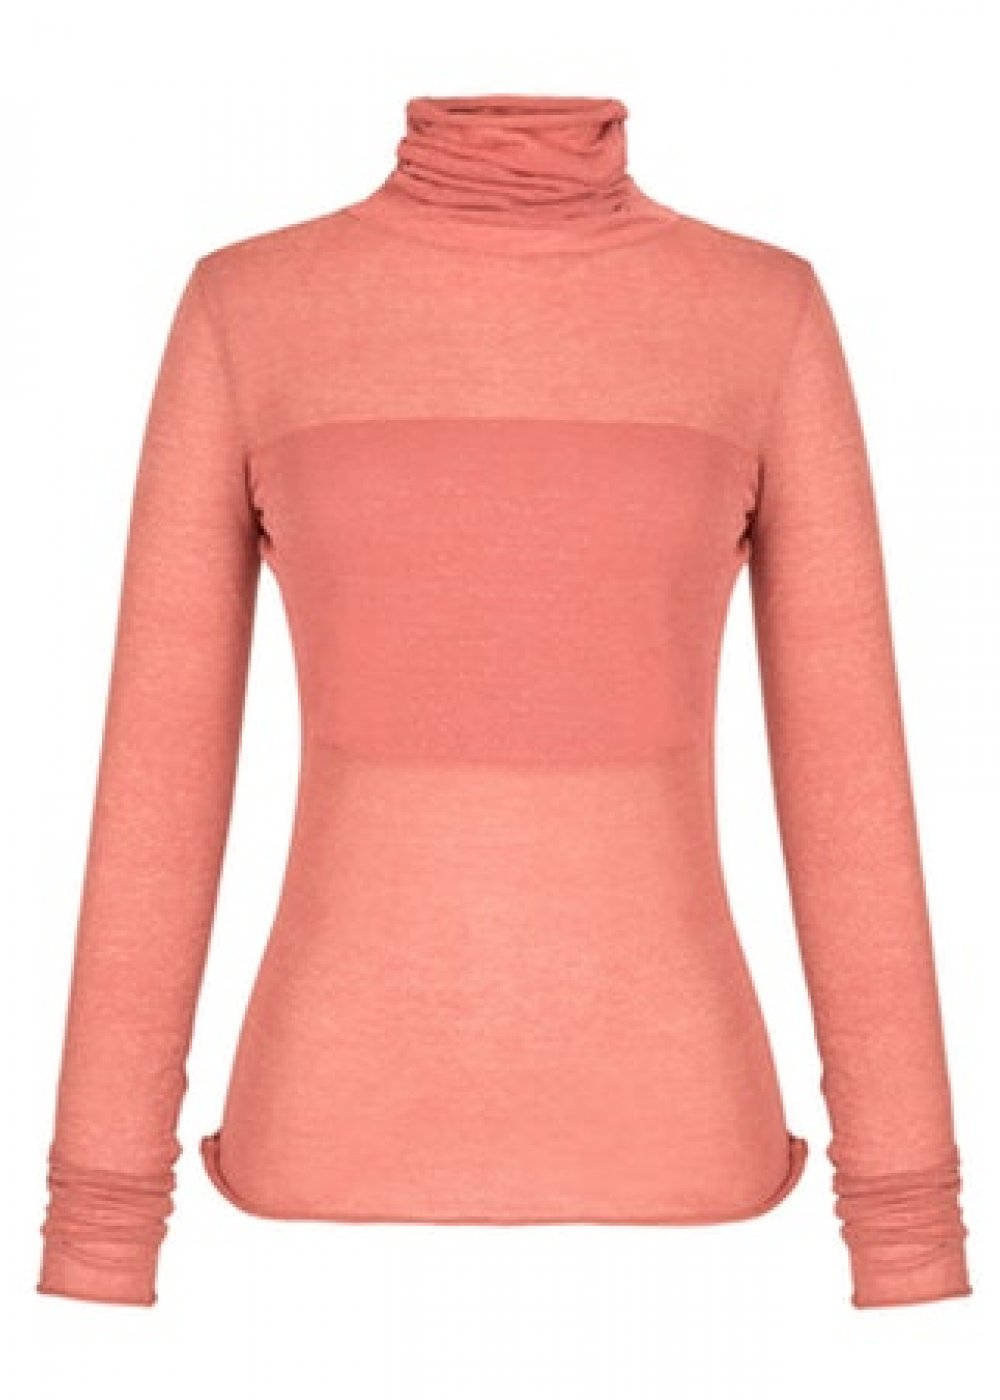 Long Sleeve Turtle Neck Dusty Pink Knit Top